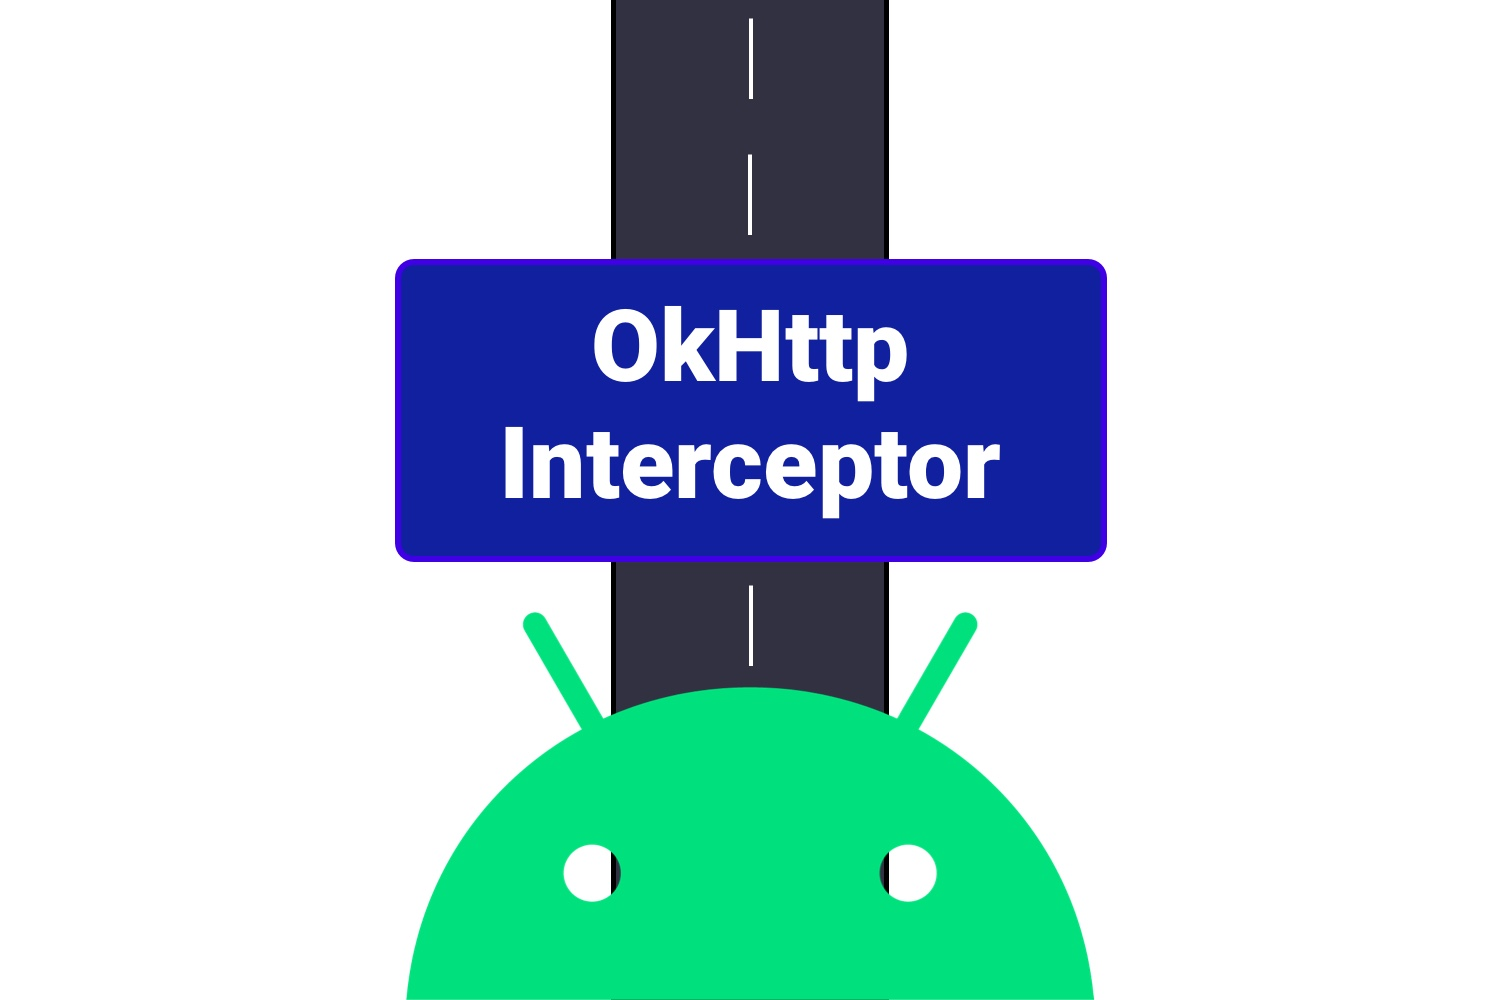 OkHttp Interceptor - Making the most of it